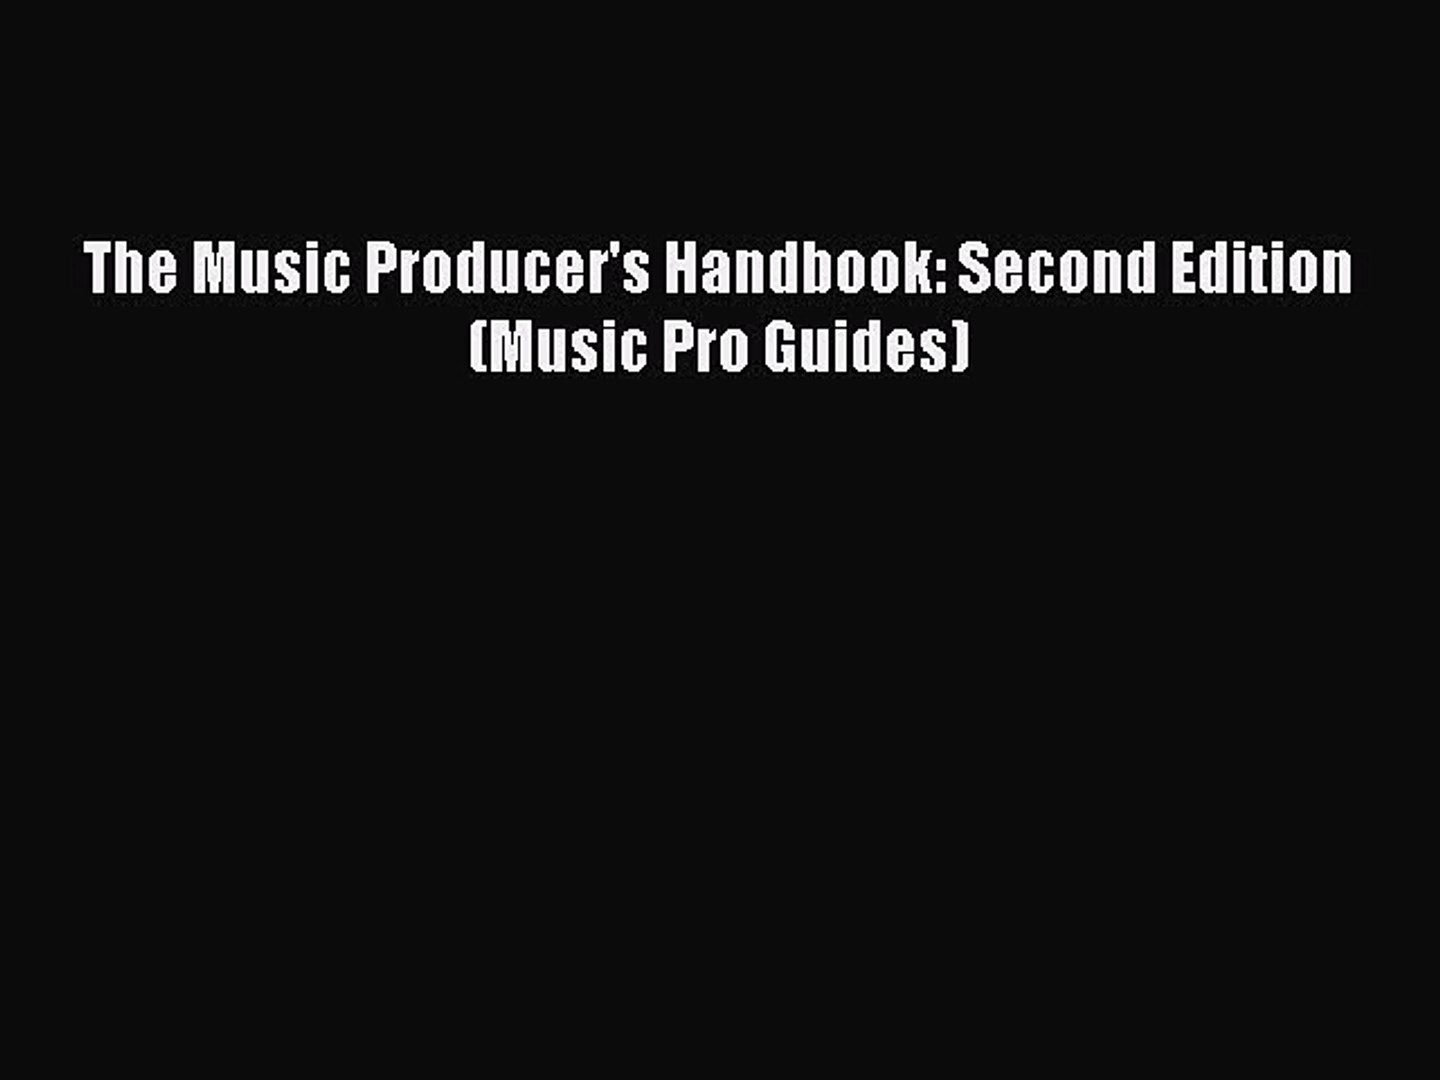 Download The Music Producer's Handbook: Second Edition (Music Pro Guides) PDF Online